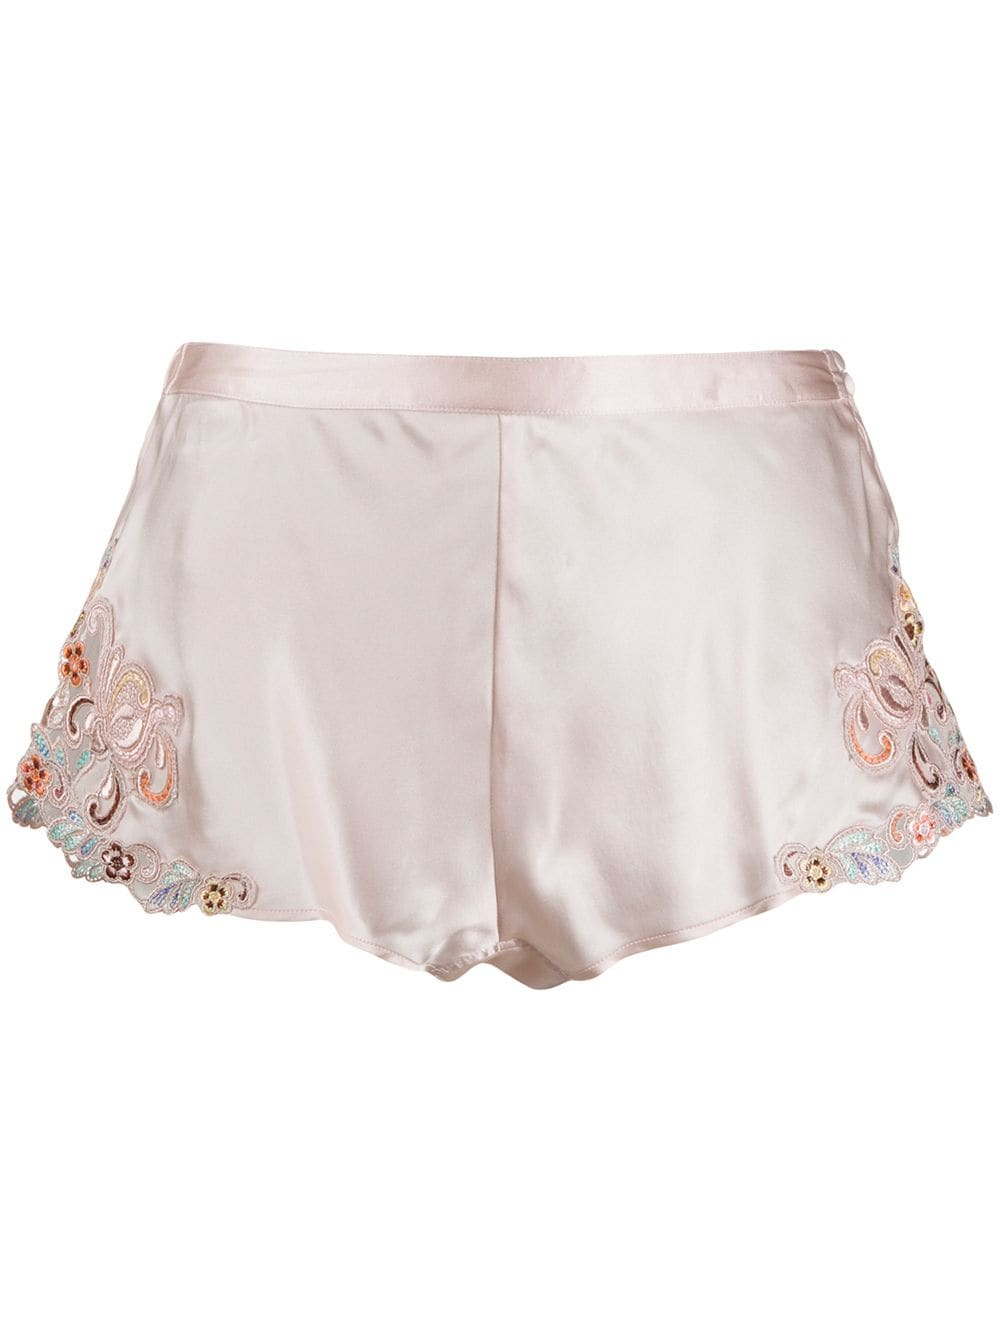 Maison Rainbow Silk French Knickers